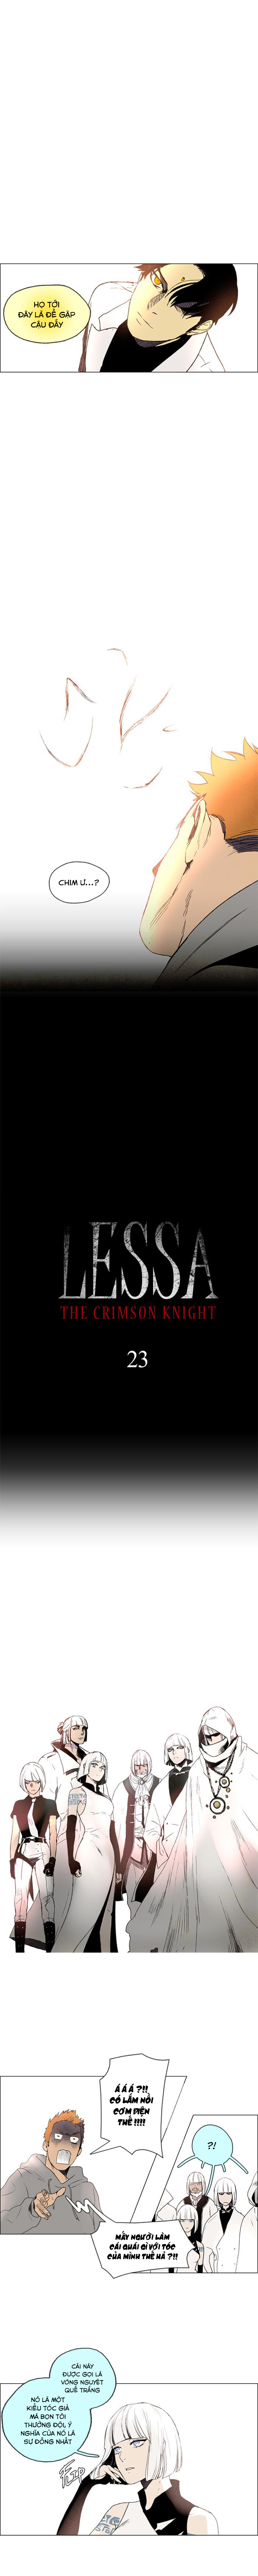 Lessa 2: The Crimson Knight Chap 23 Trang 1